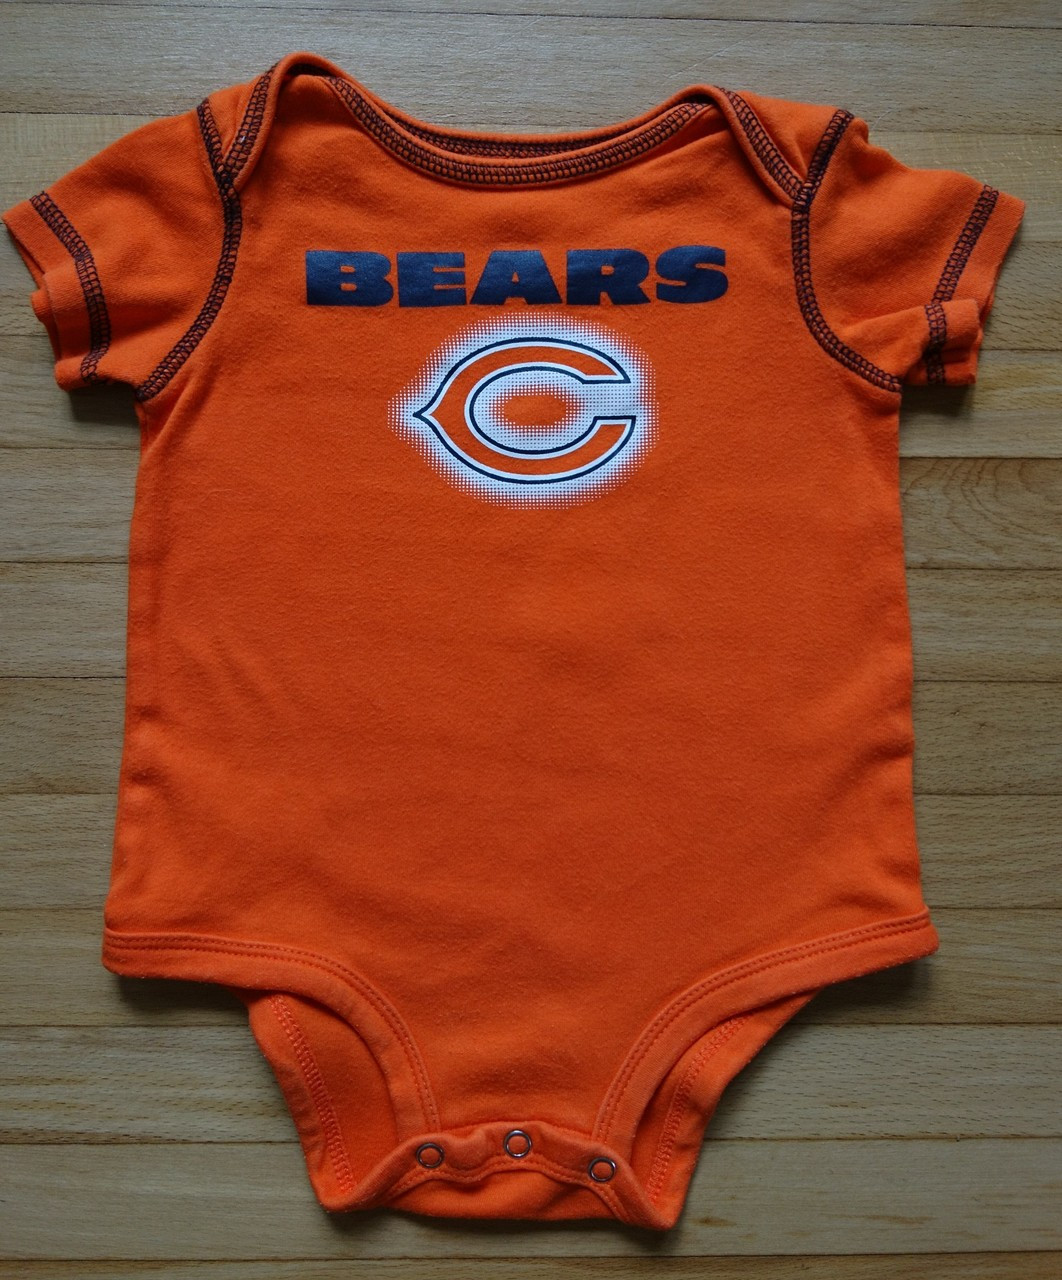 5e653265 Baby Clothes - Chicago Bears - NFL Team Apparel - One Piece Outfit - 3-6  Month - Pre-Owned - Treasure Website